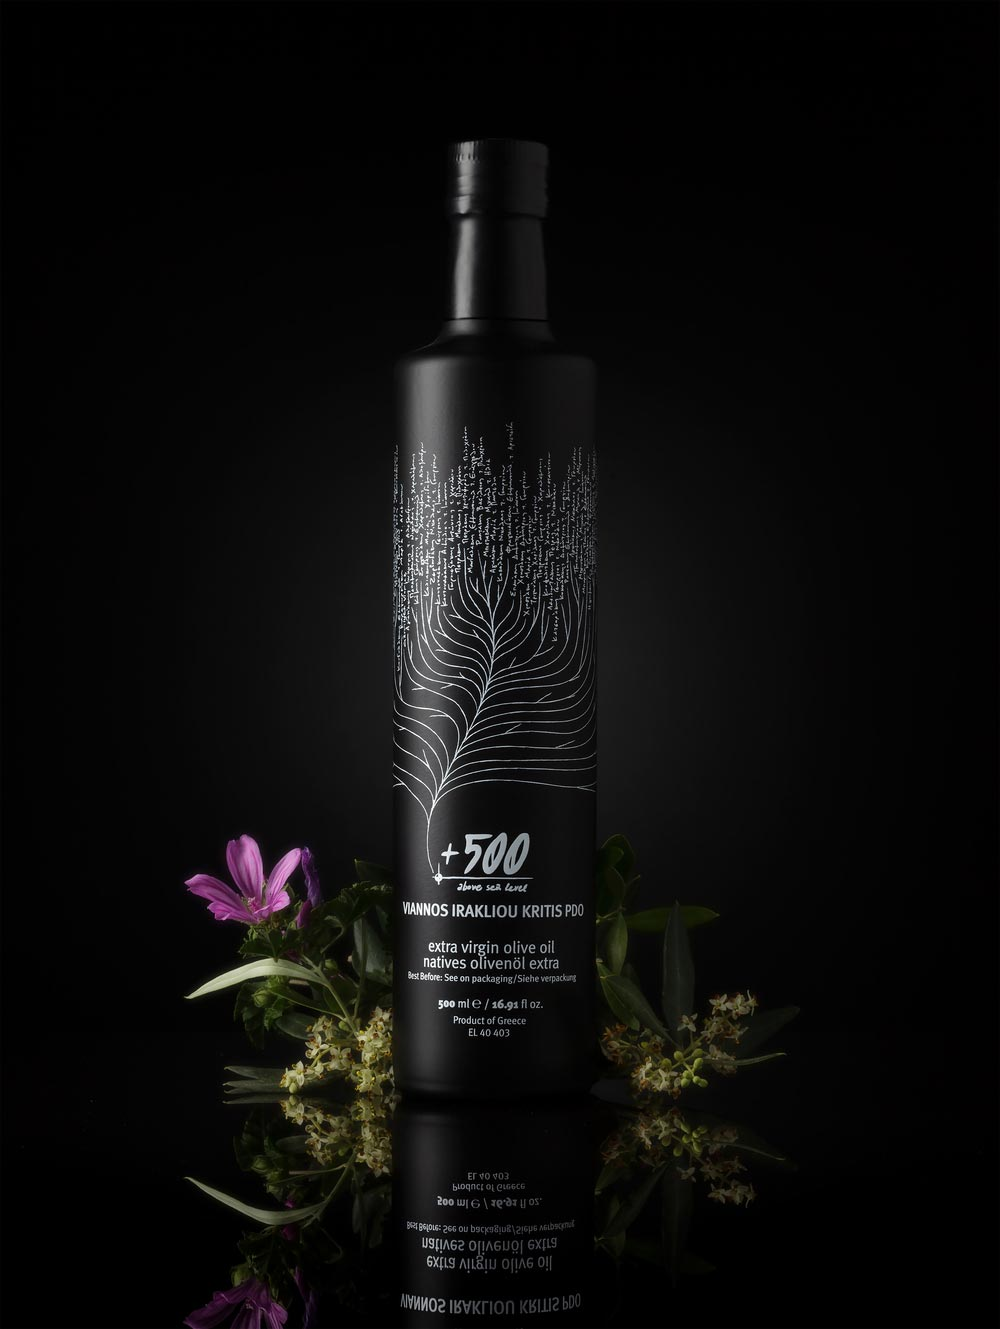 Beautifully executed bottle design - Olive Oil Cooperative Of Viannos